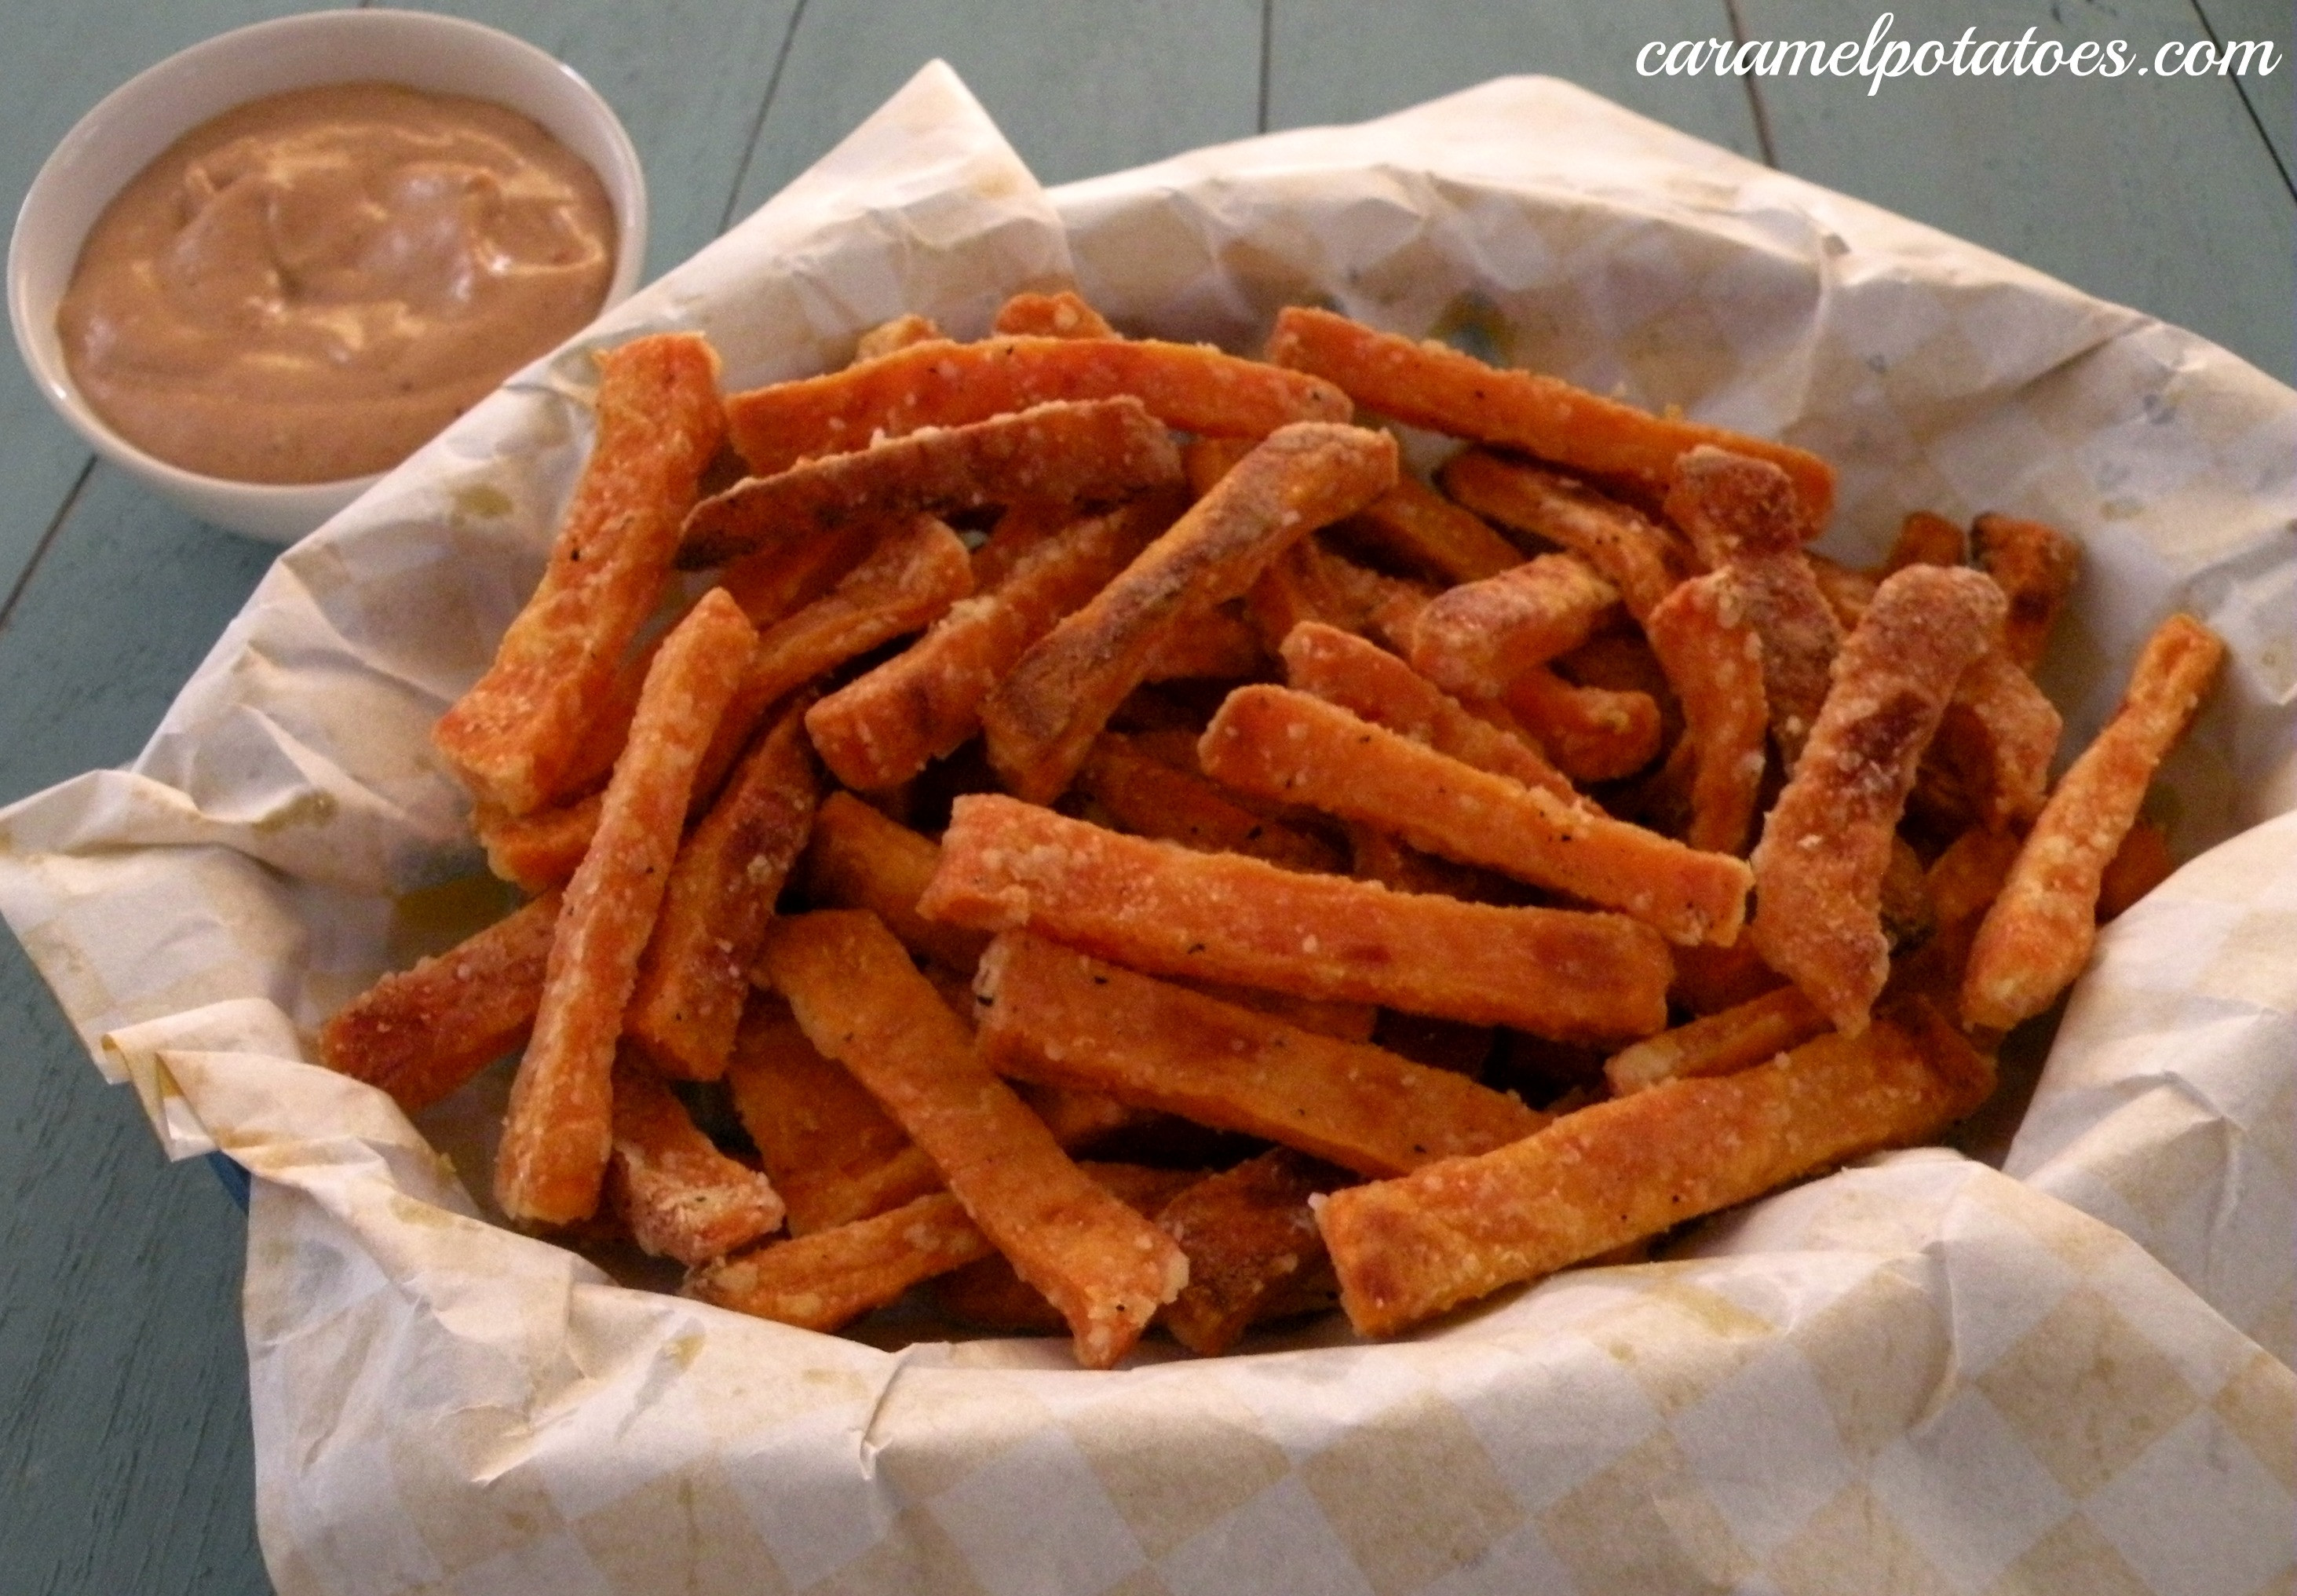 Sweet Potato Fries In Oven  Caramel Potatoes Oven Baked Sweet Potato Fries